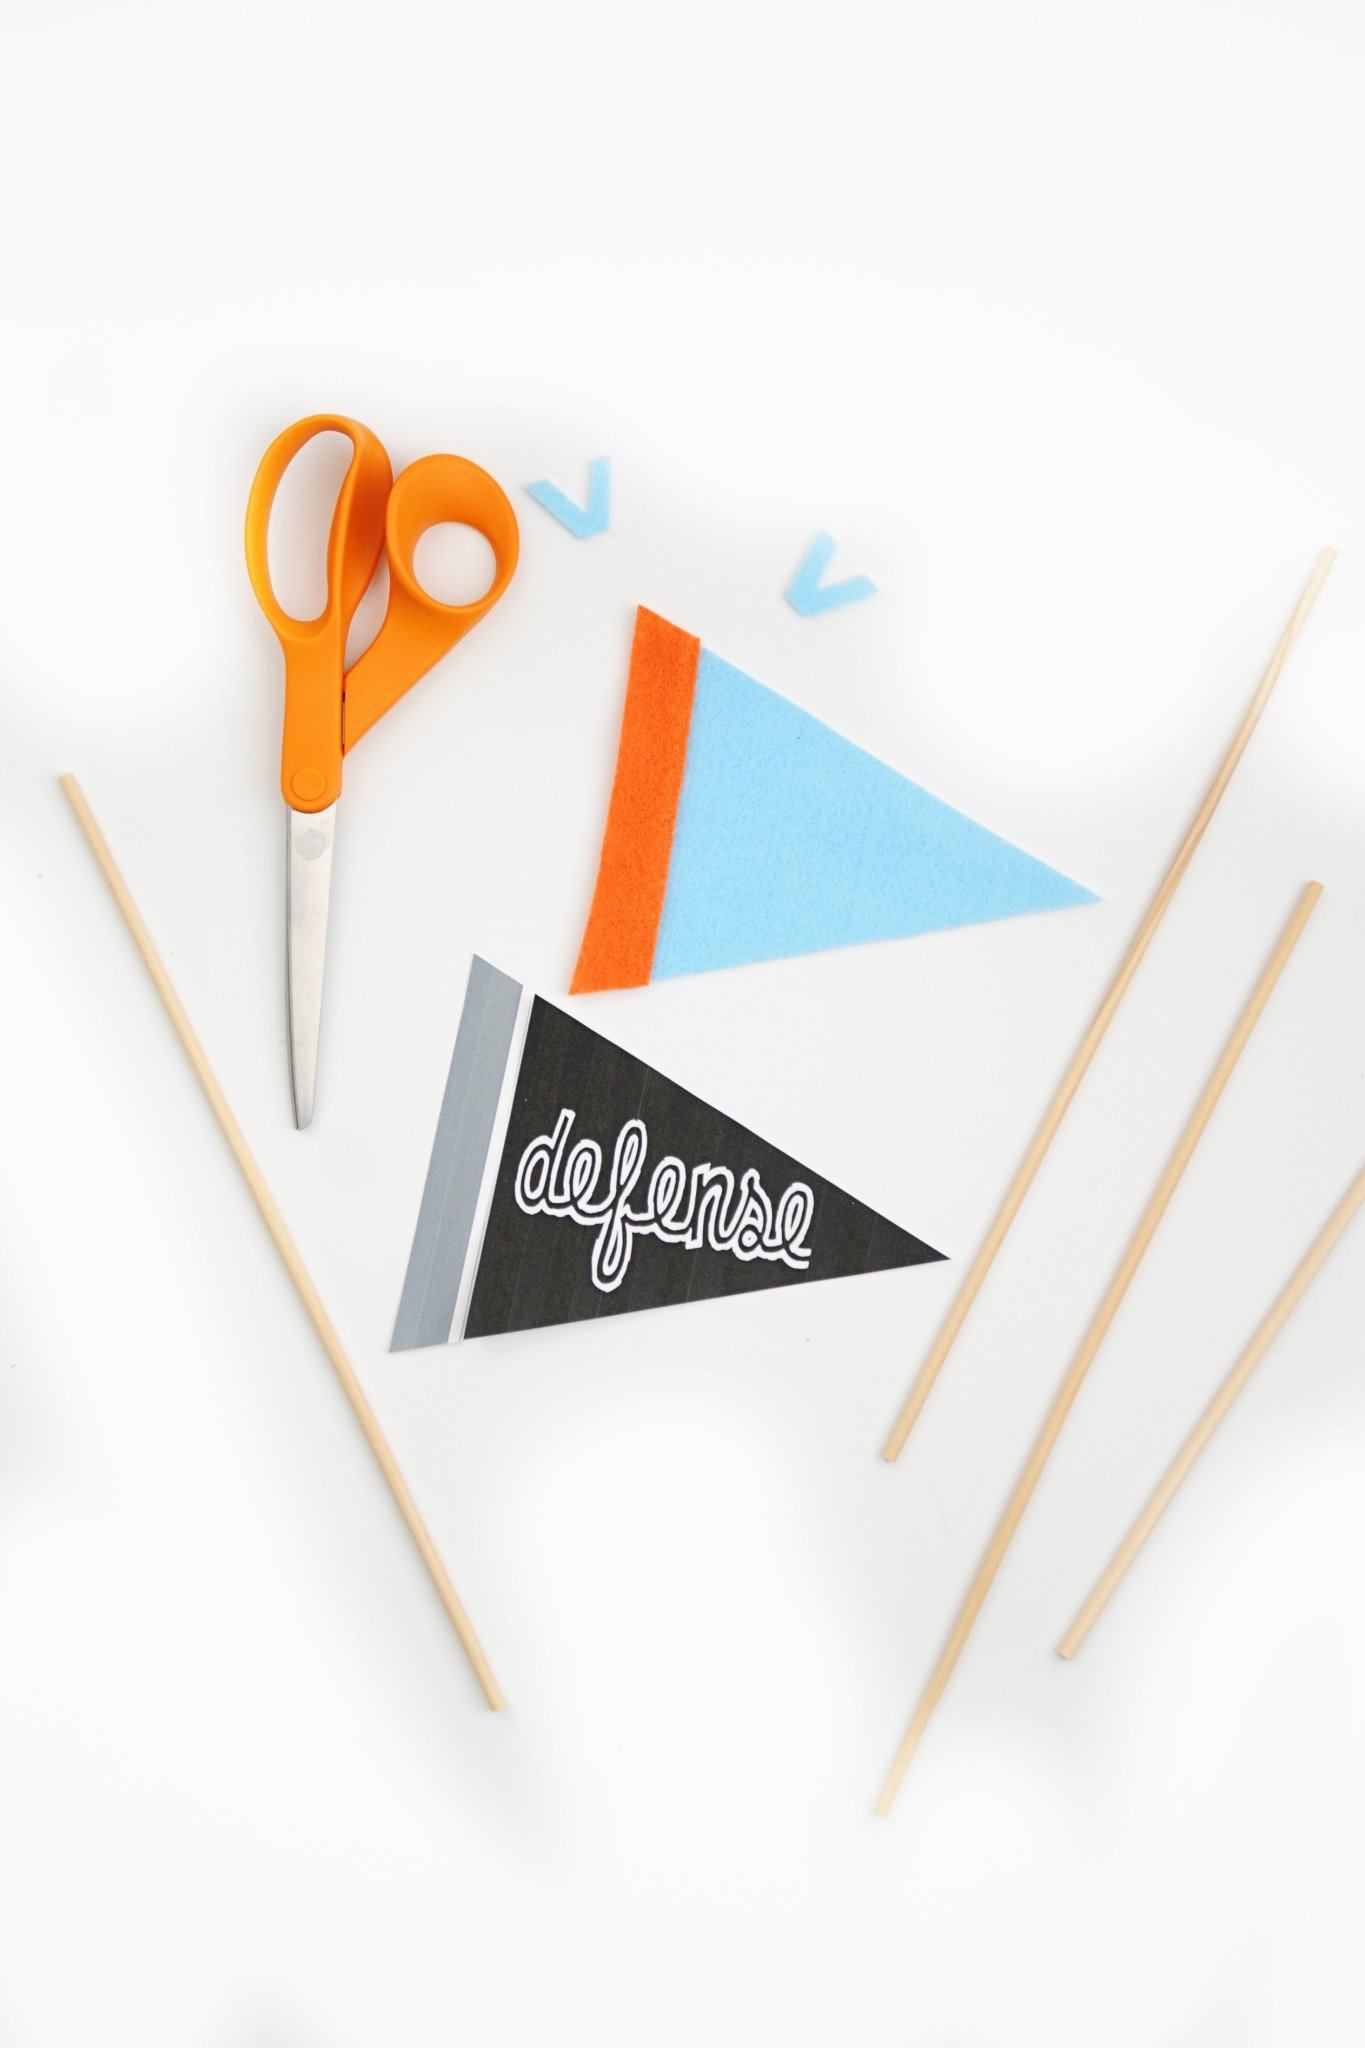 diy pennant banners - Selo.l-ink.co